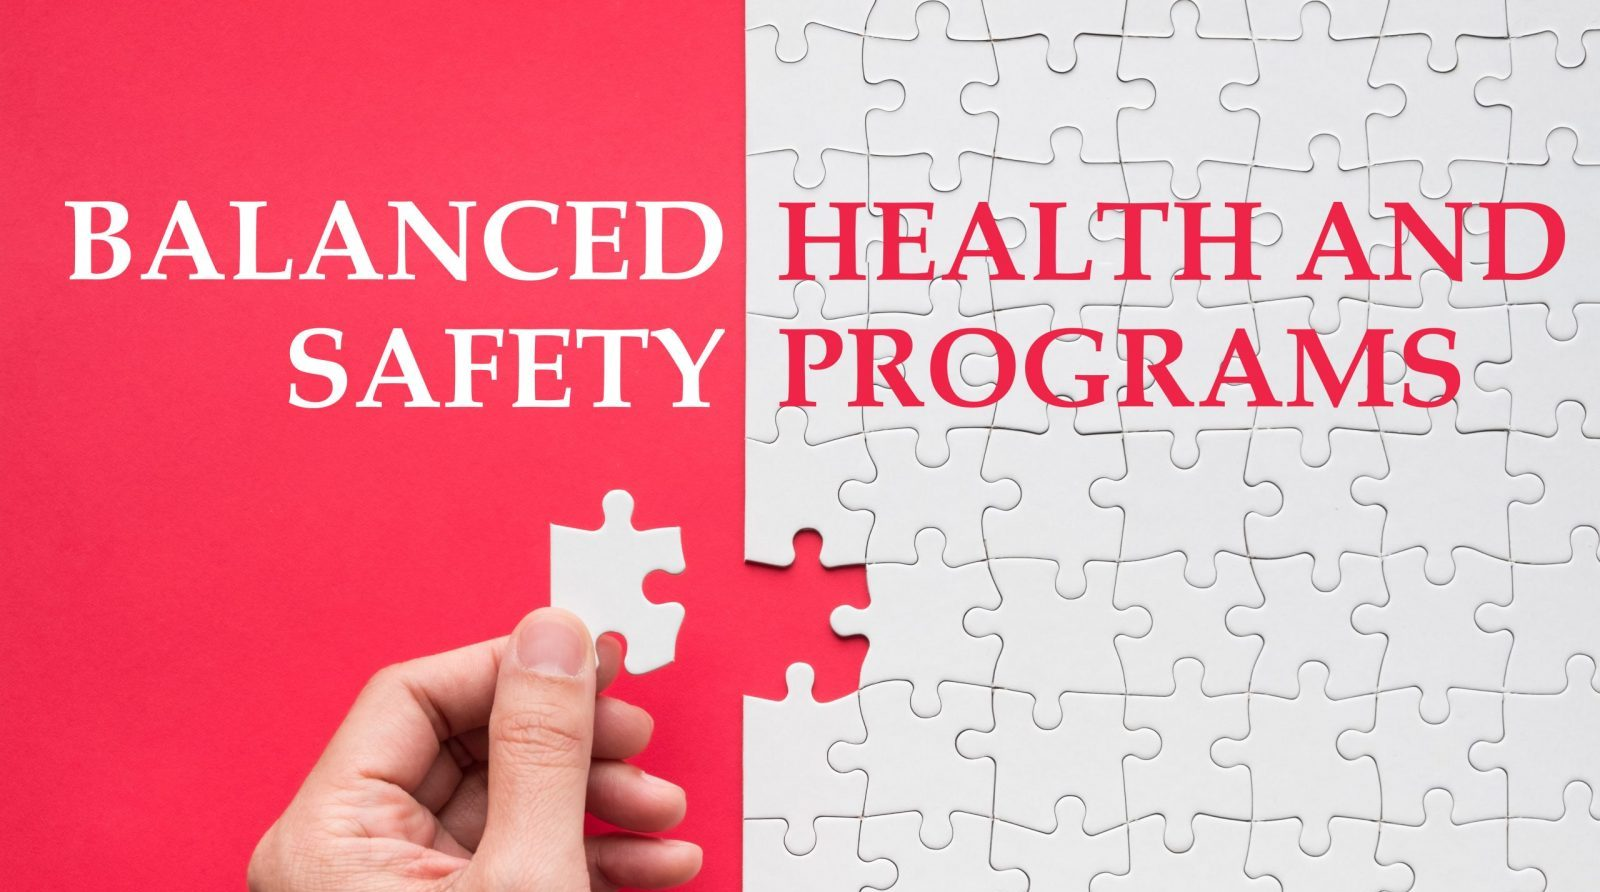 You are currently viewing National Safe + Sound Week Begins Aug 9<sup>th</sup> to Encourage Workplace Health And Safety Programs